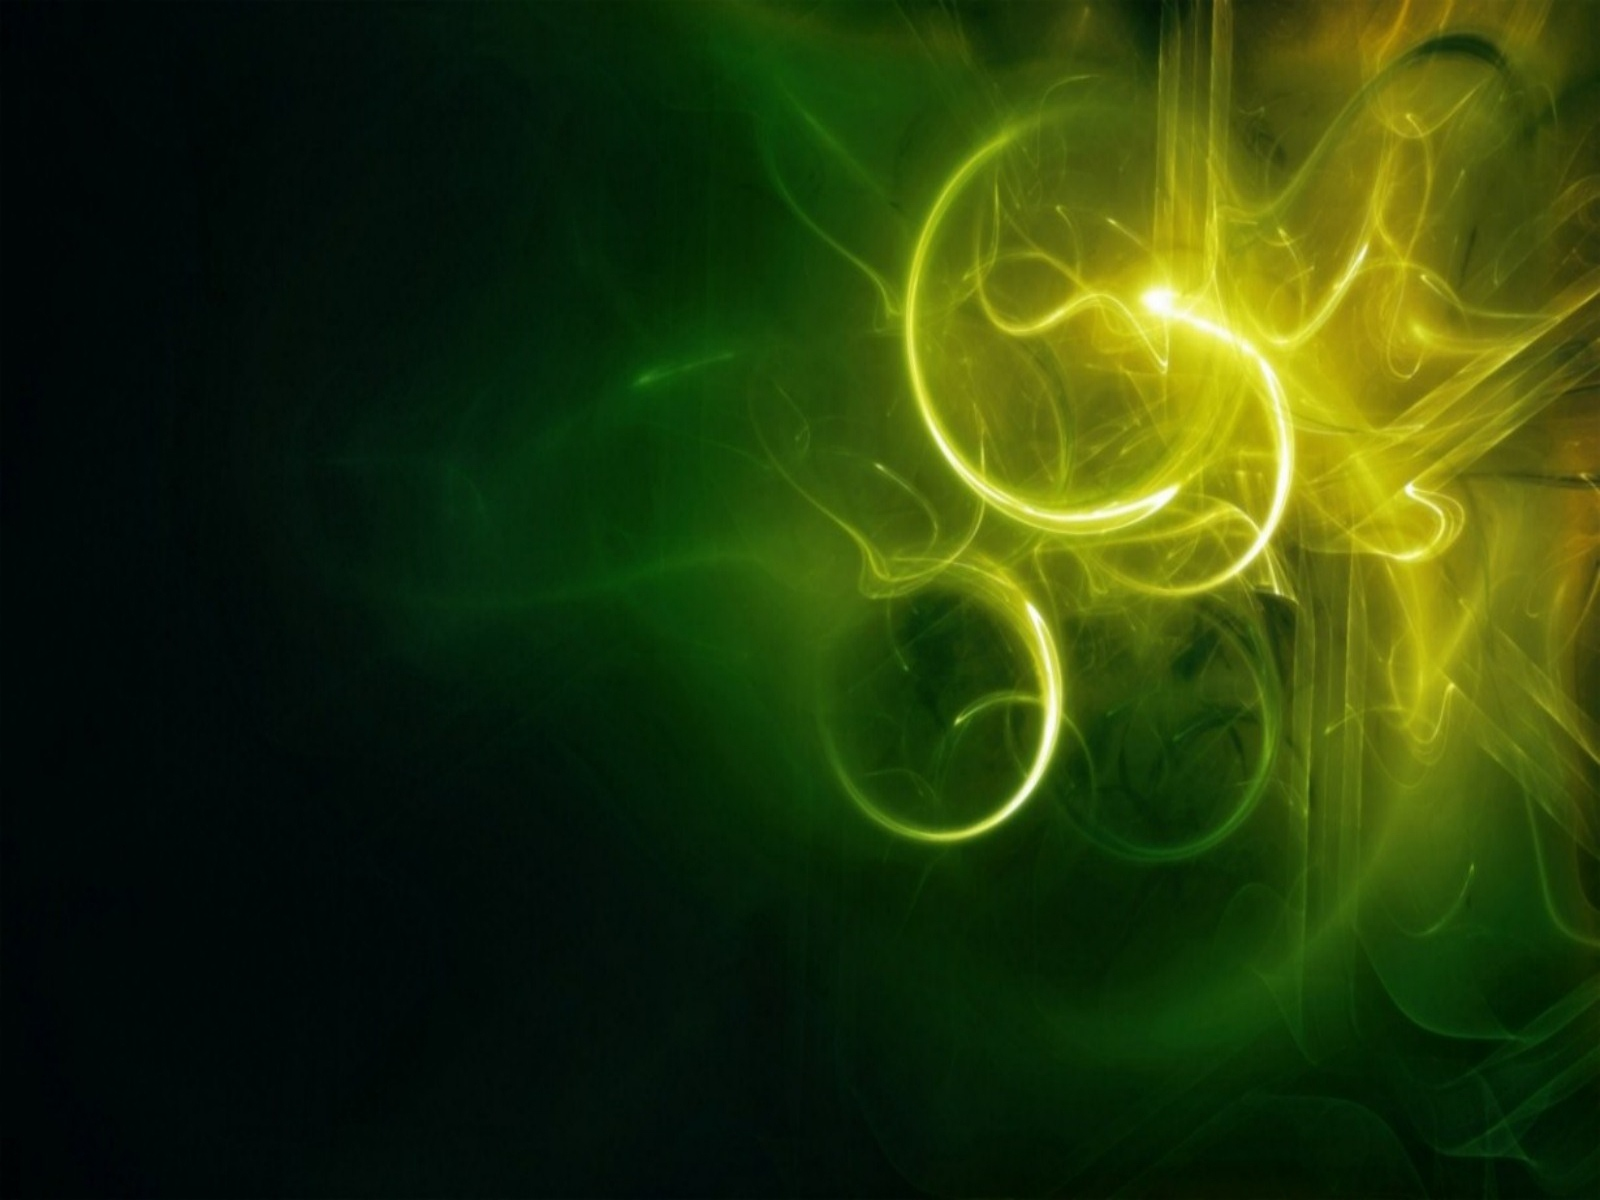 Linux Mint Abstract Wallpapers Mint On Desktop Background HD 1600x1200